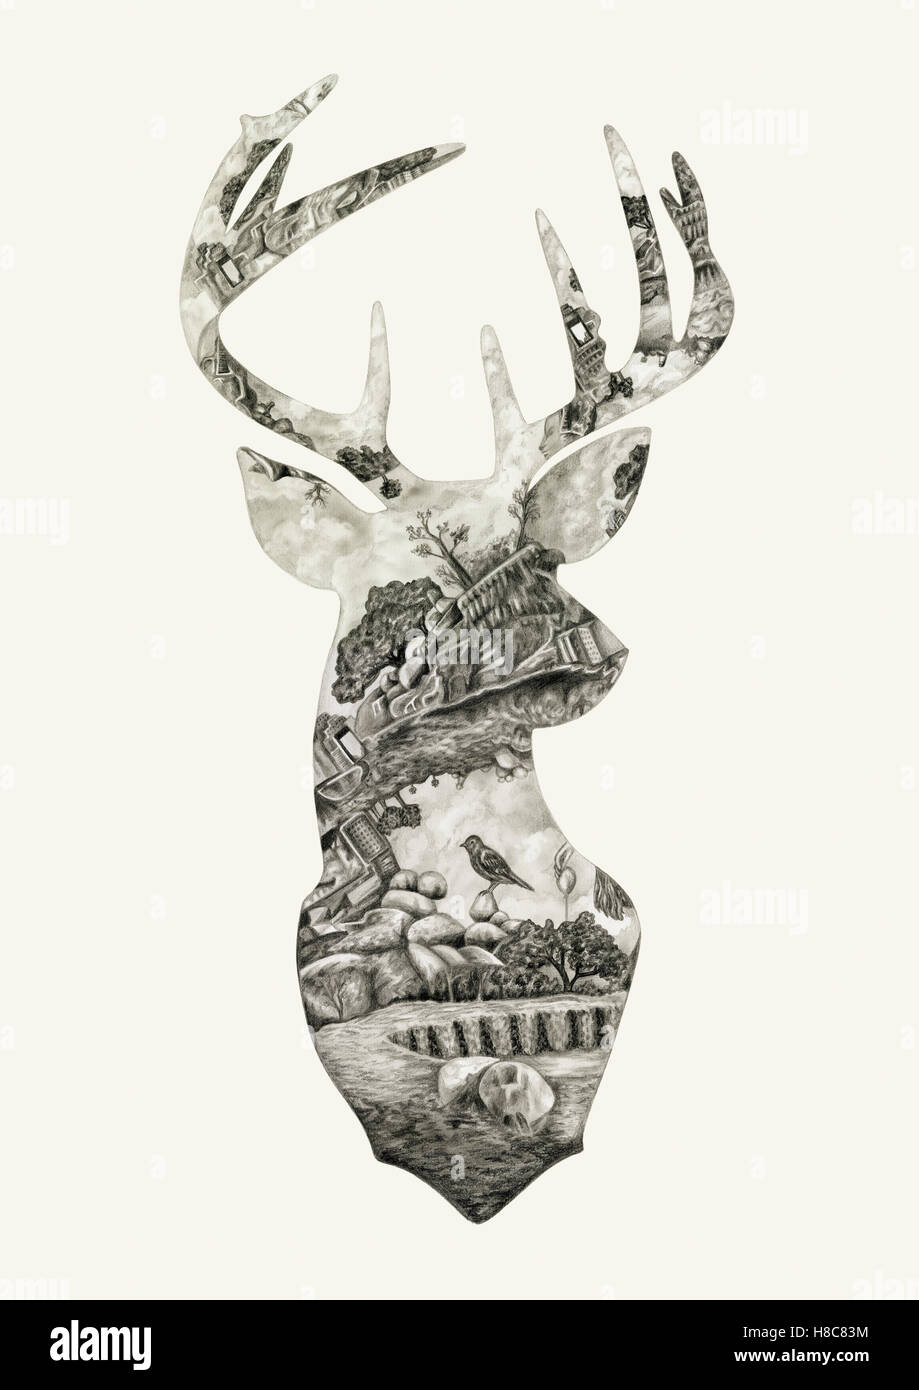 Silhouette of deer with nature pattern - Stock Image